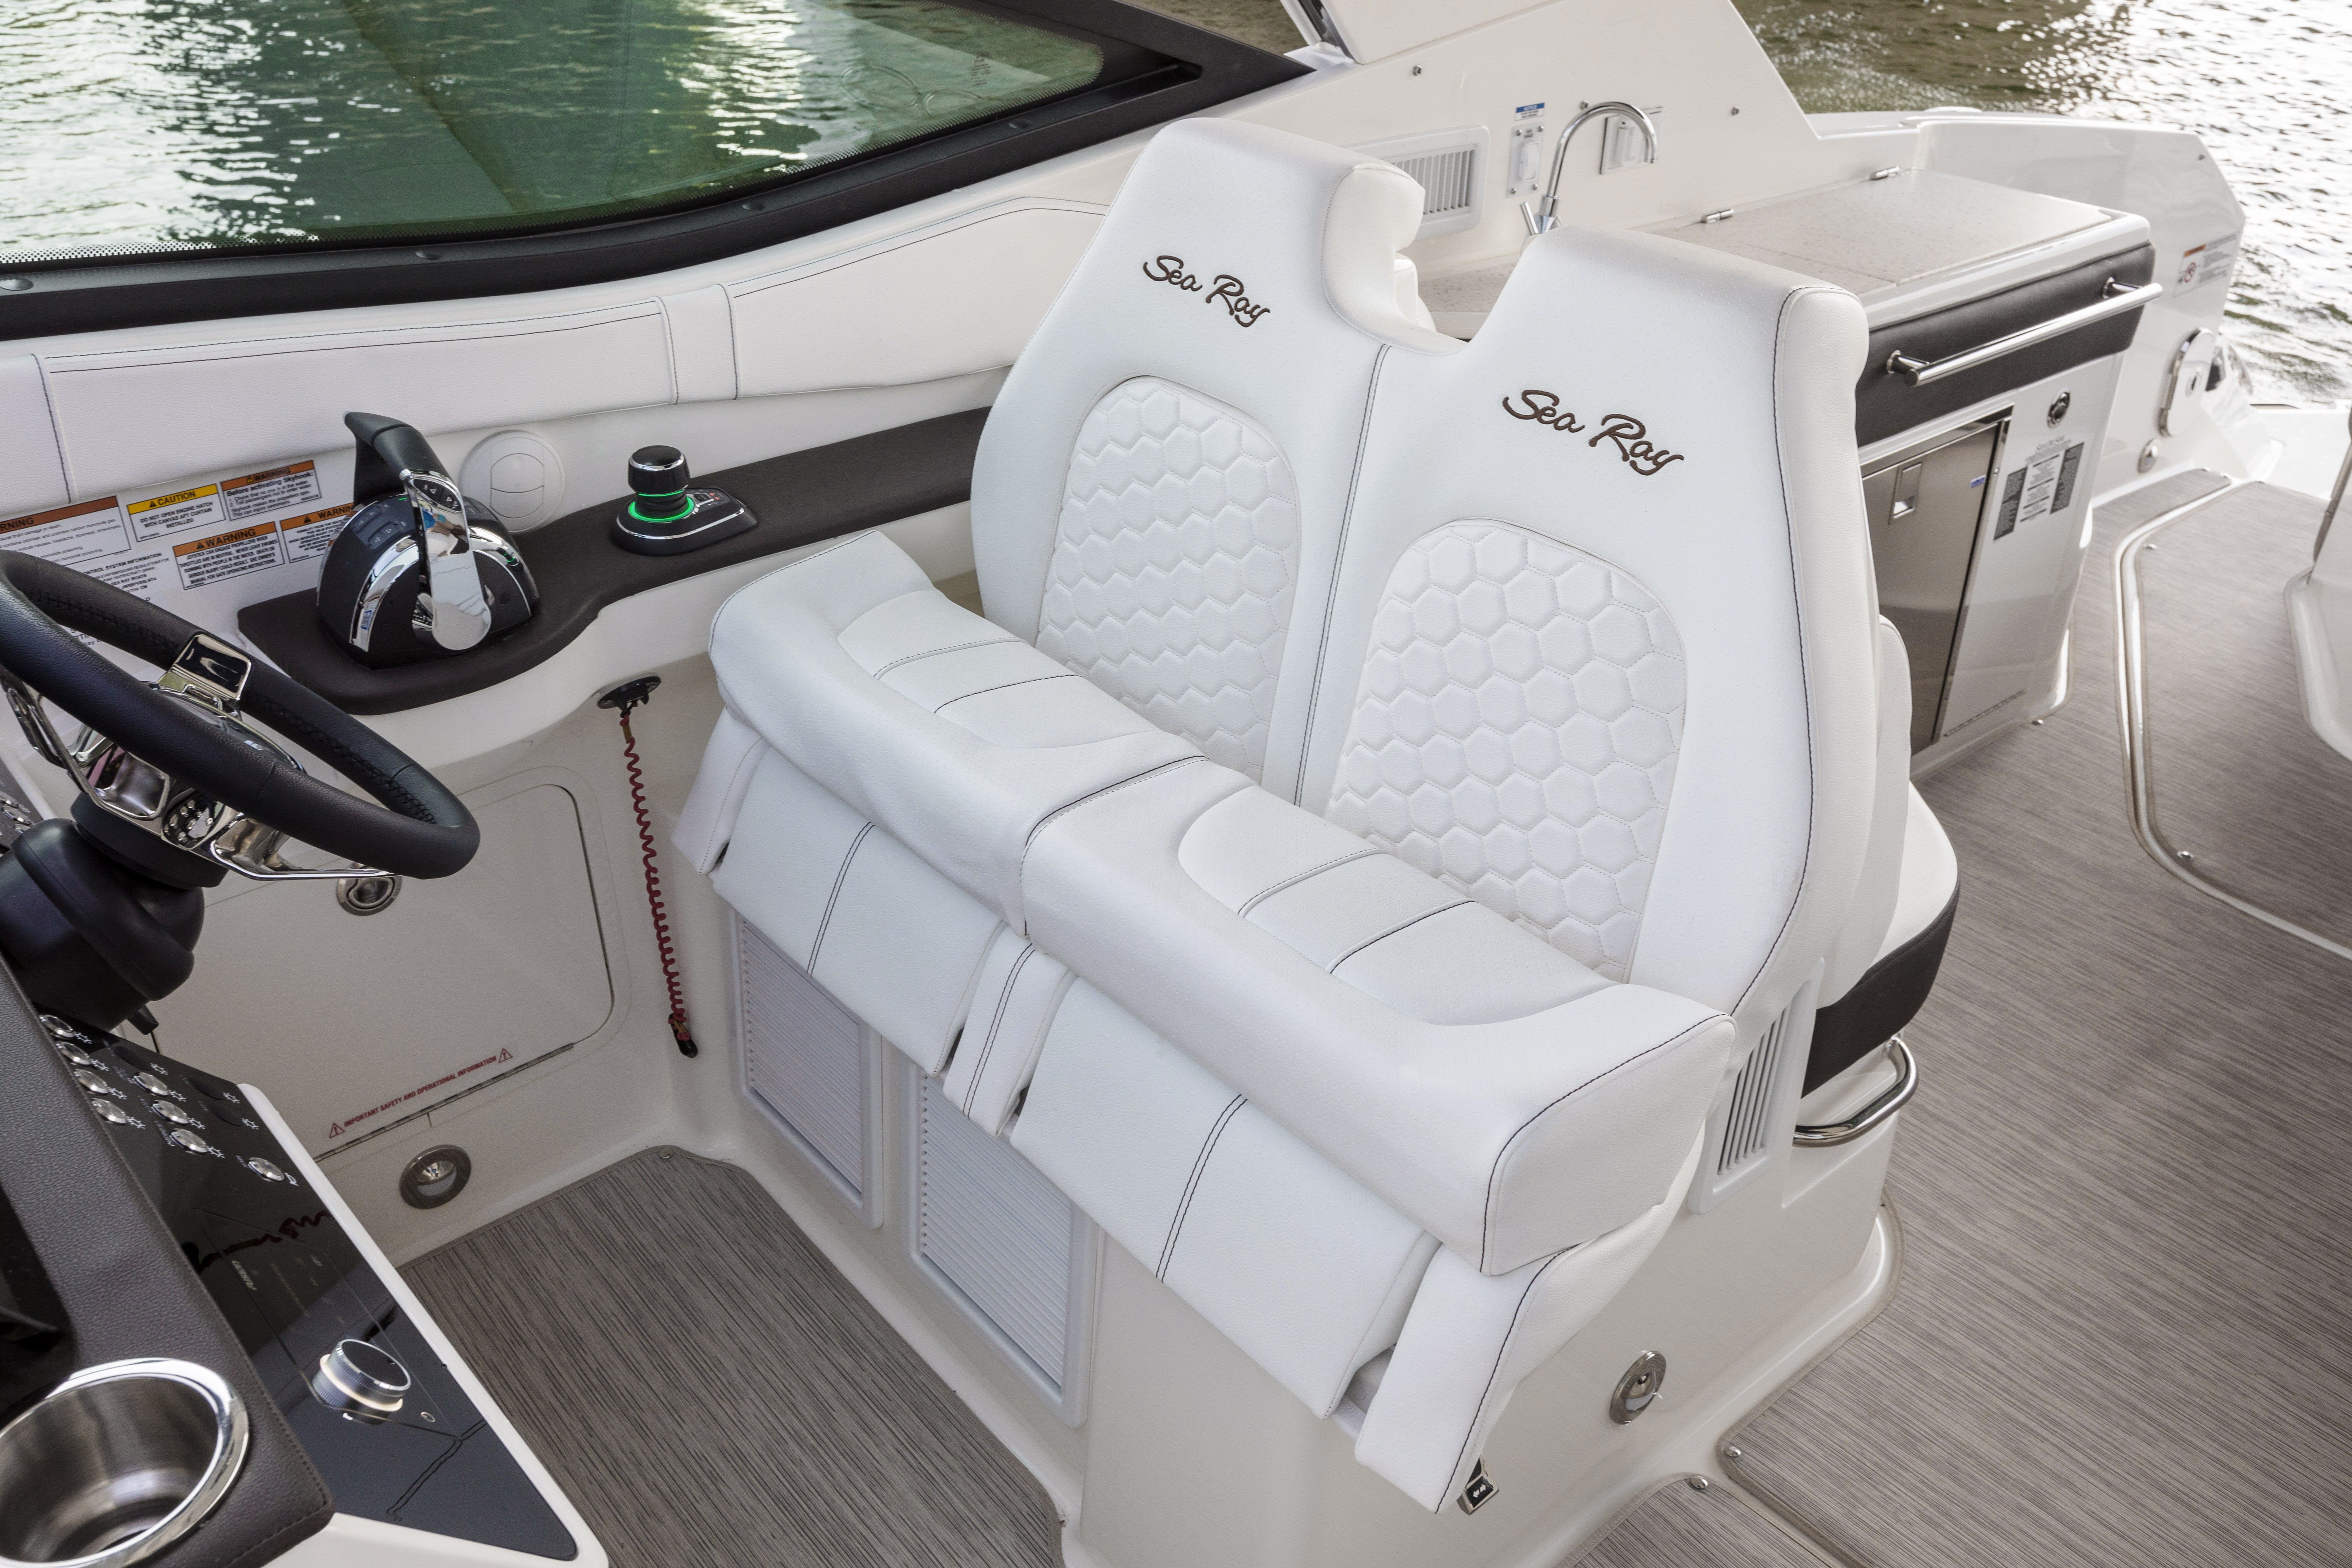 2022 Sea Ray boat for sale, model of the boat is 320 SUNDANCER & Image # 7 of 11